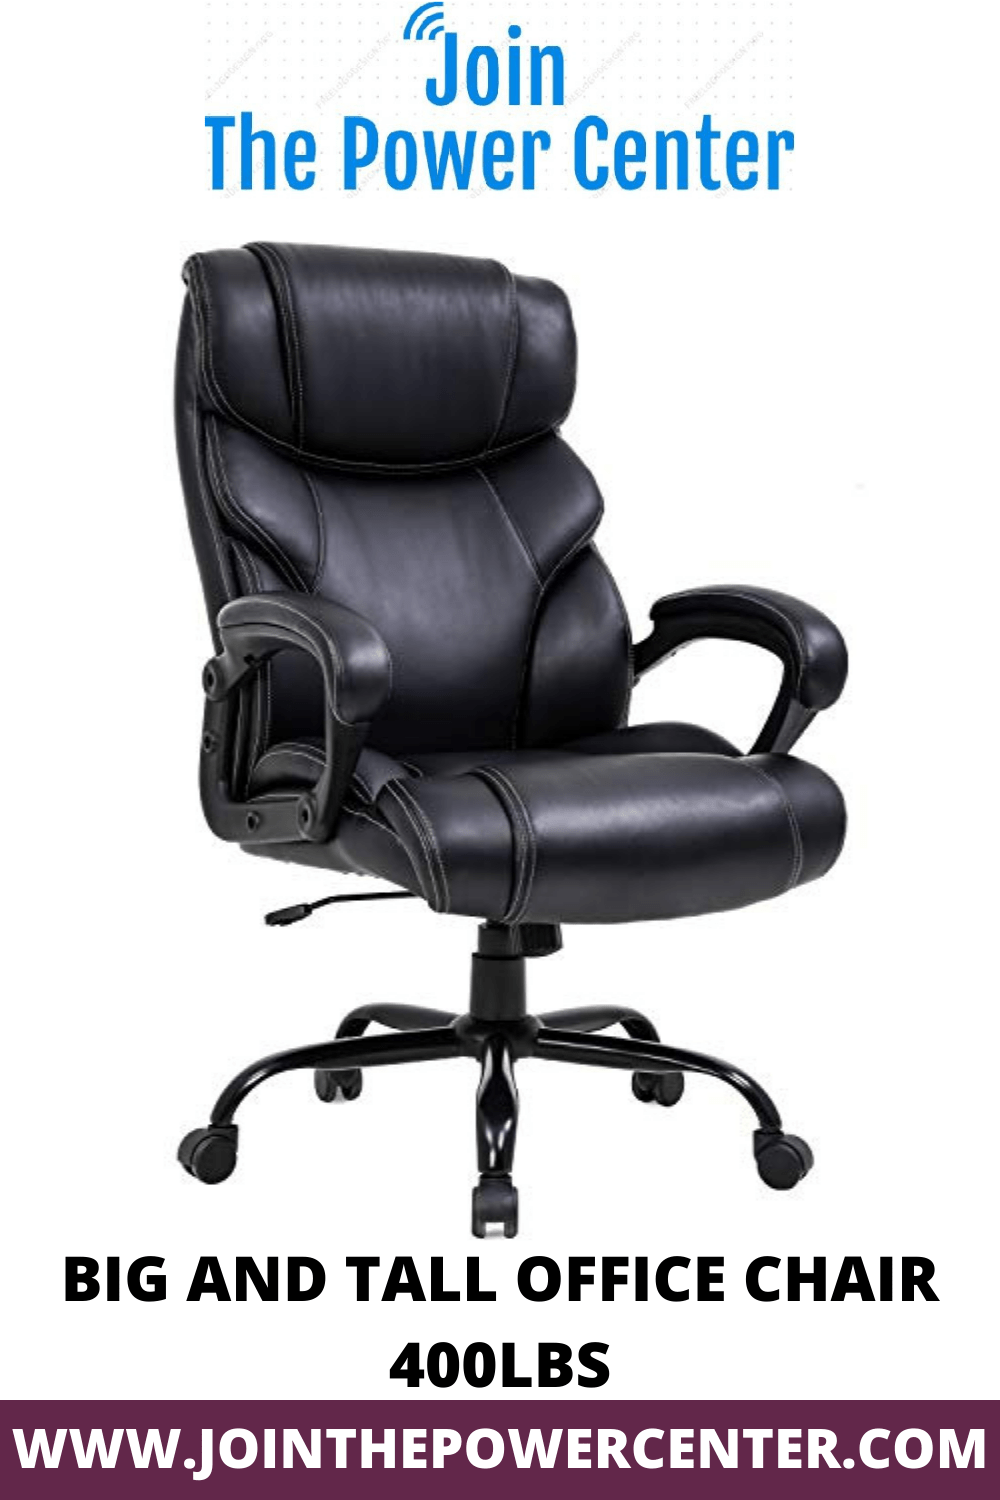 office chairs rated over 300 lbs